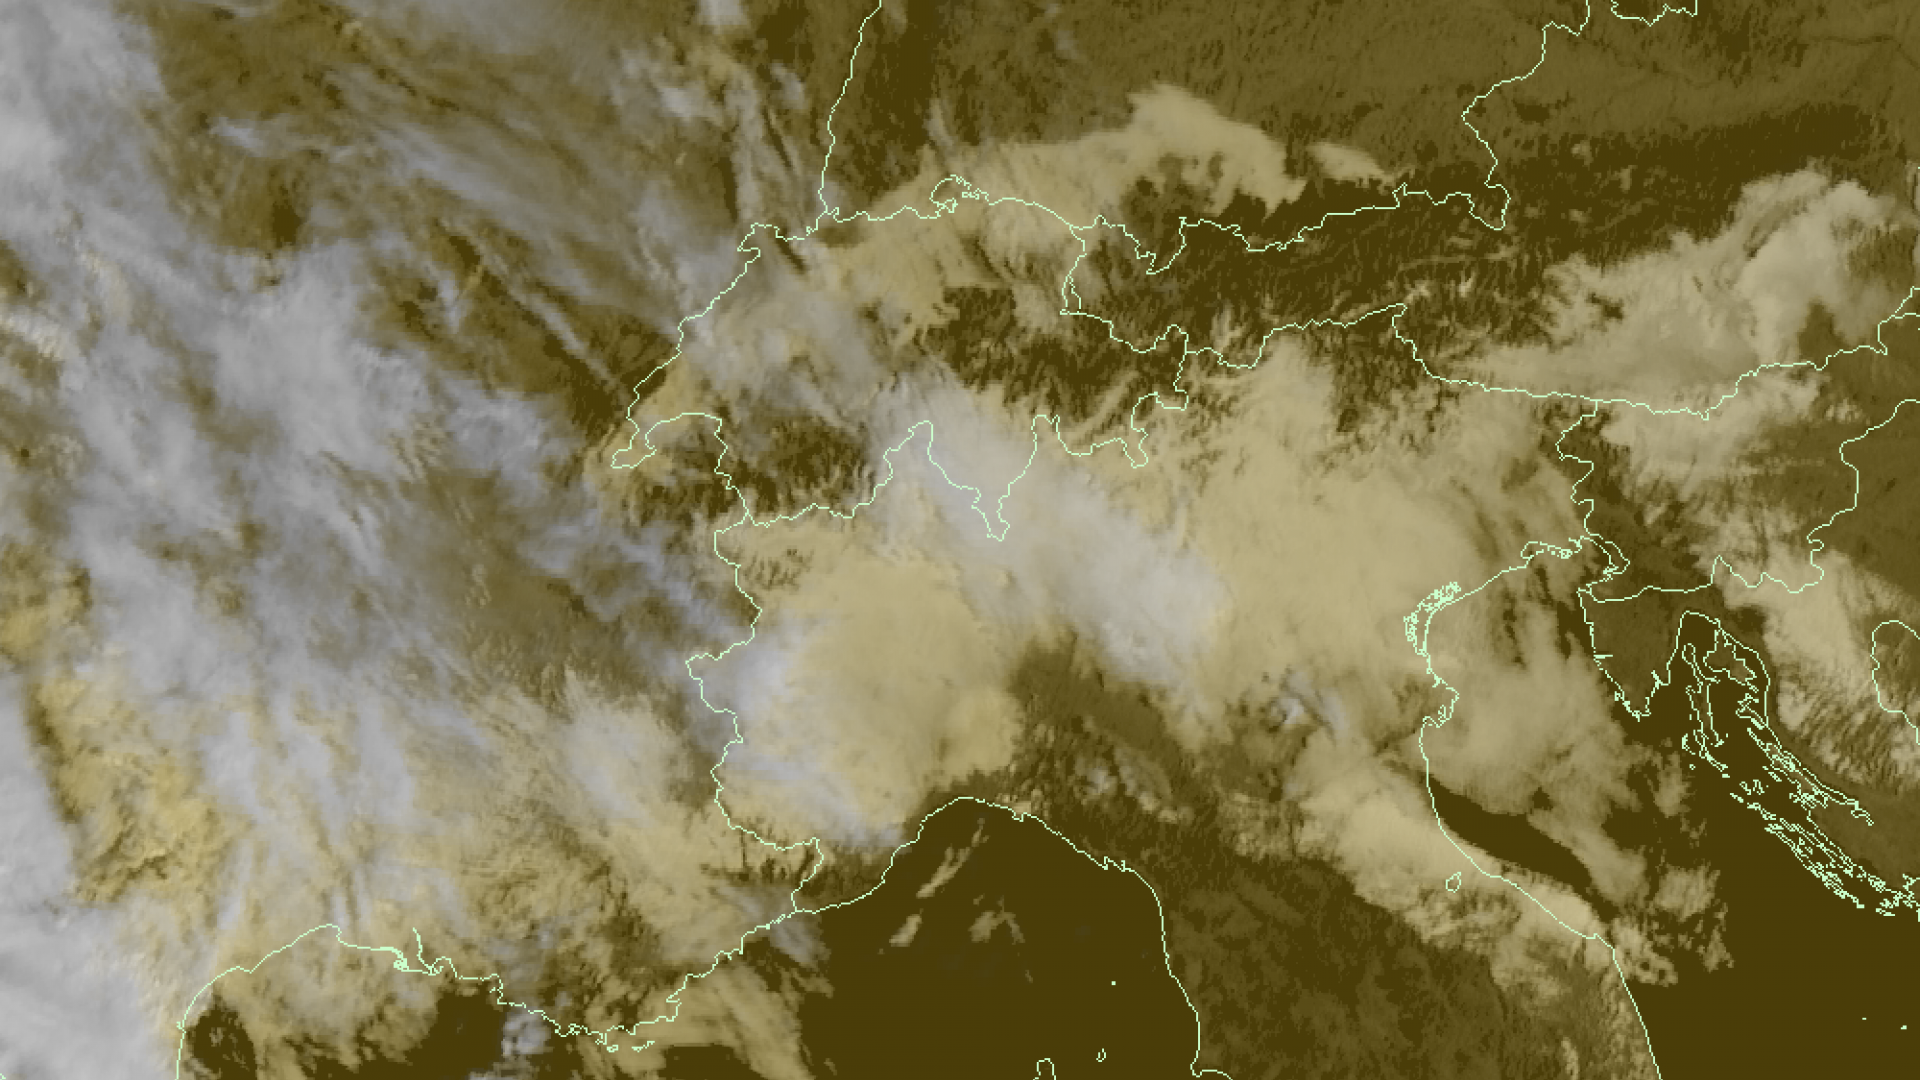 Cloudy over the southern Alpine valleys